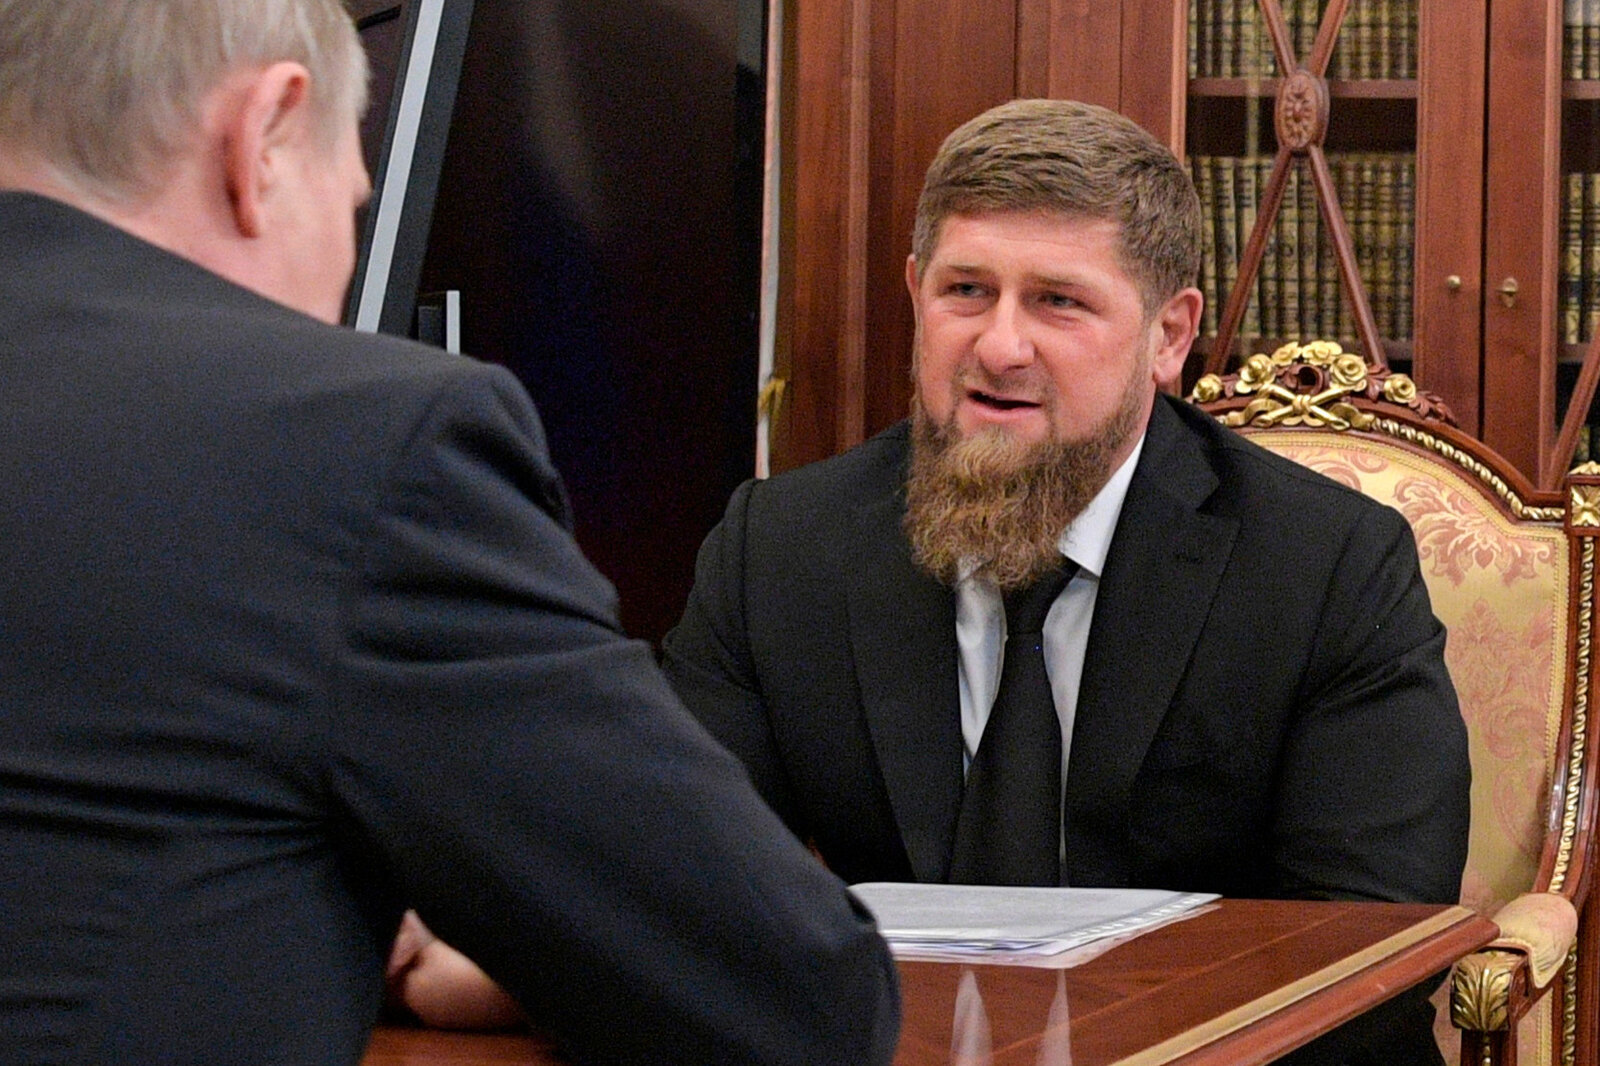 Chechnya's leader Ramzan Kadyrov met with Russian President Vladimir Putin at the Kremlin in April and denied reports that gay men were being targeted or mistreated. (Alexei Druzhinin/AP)